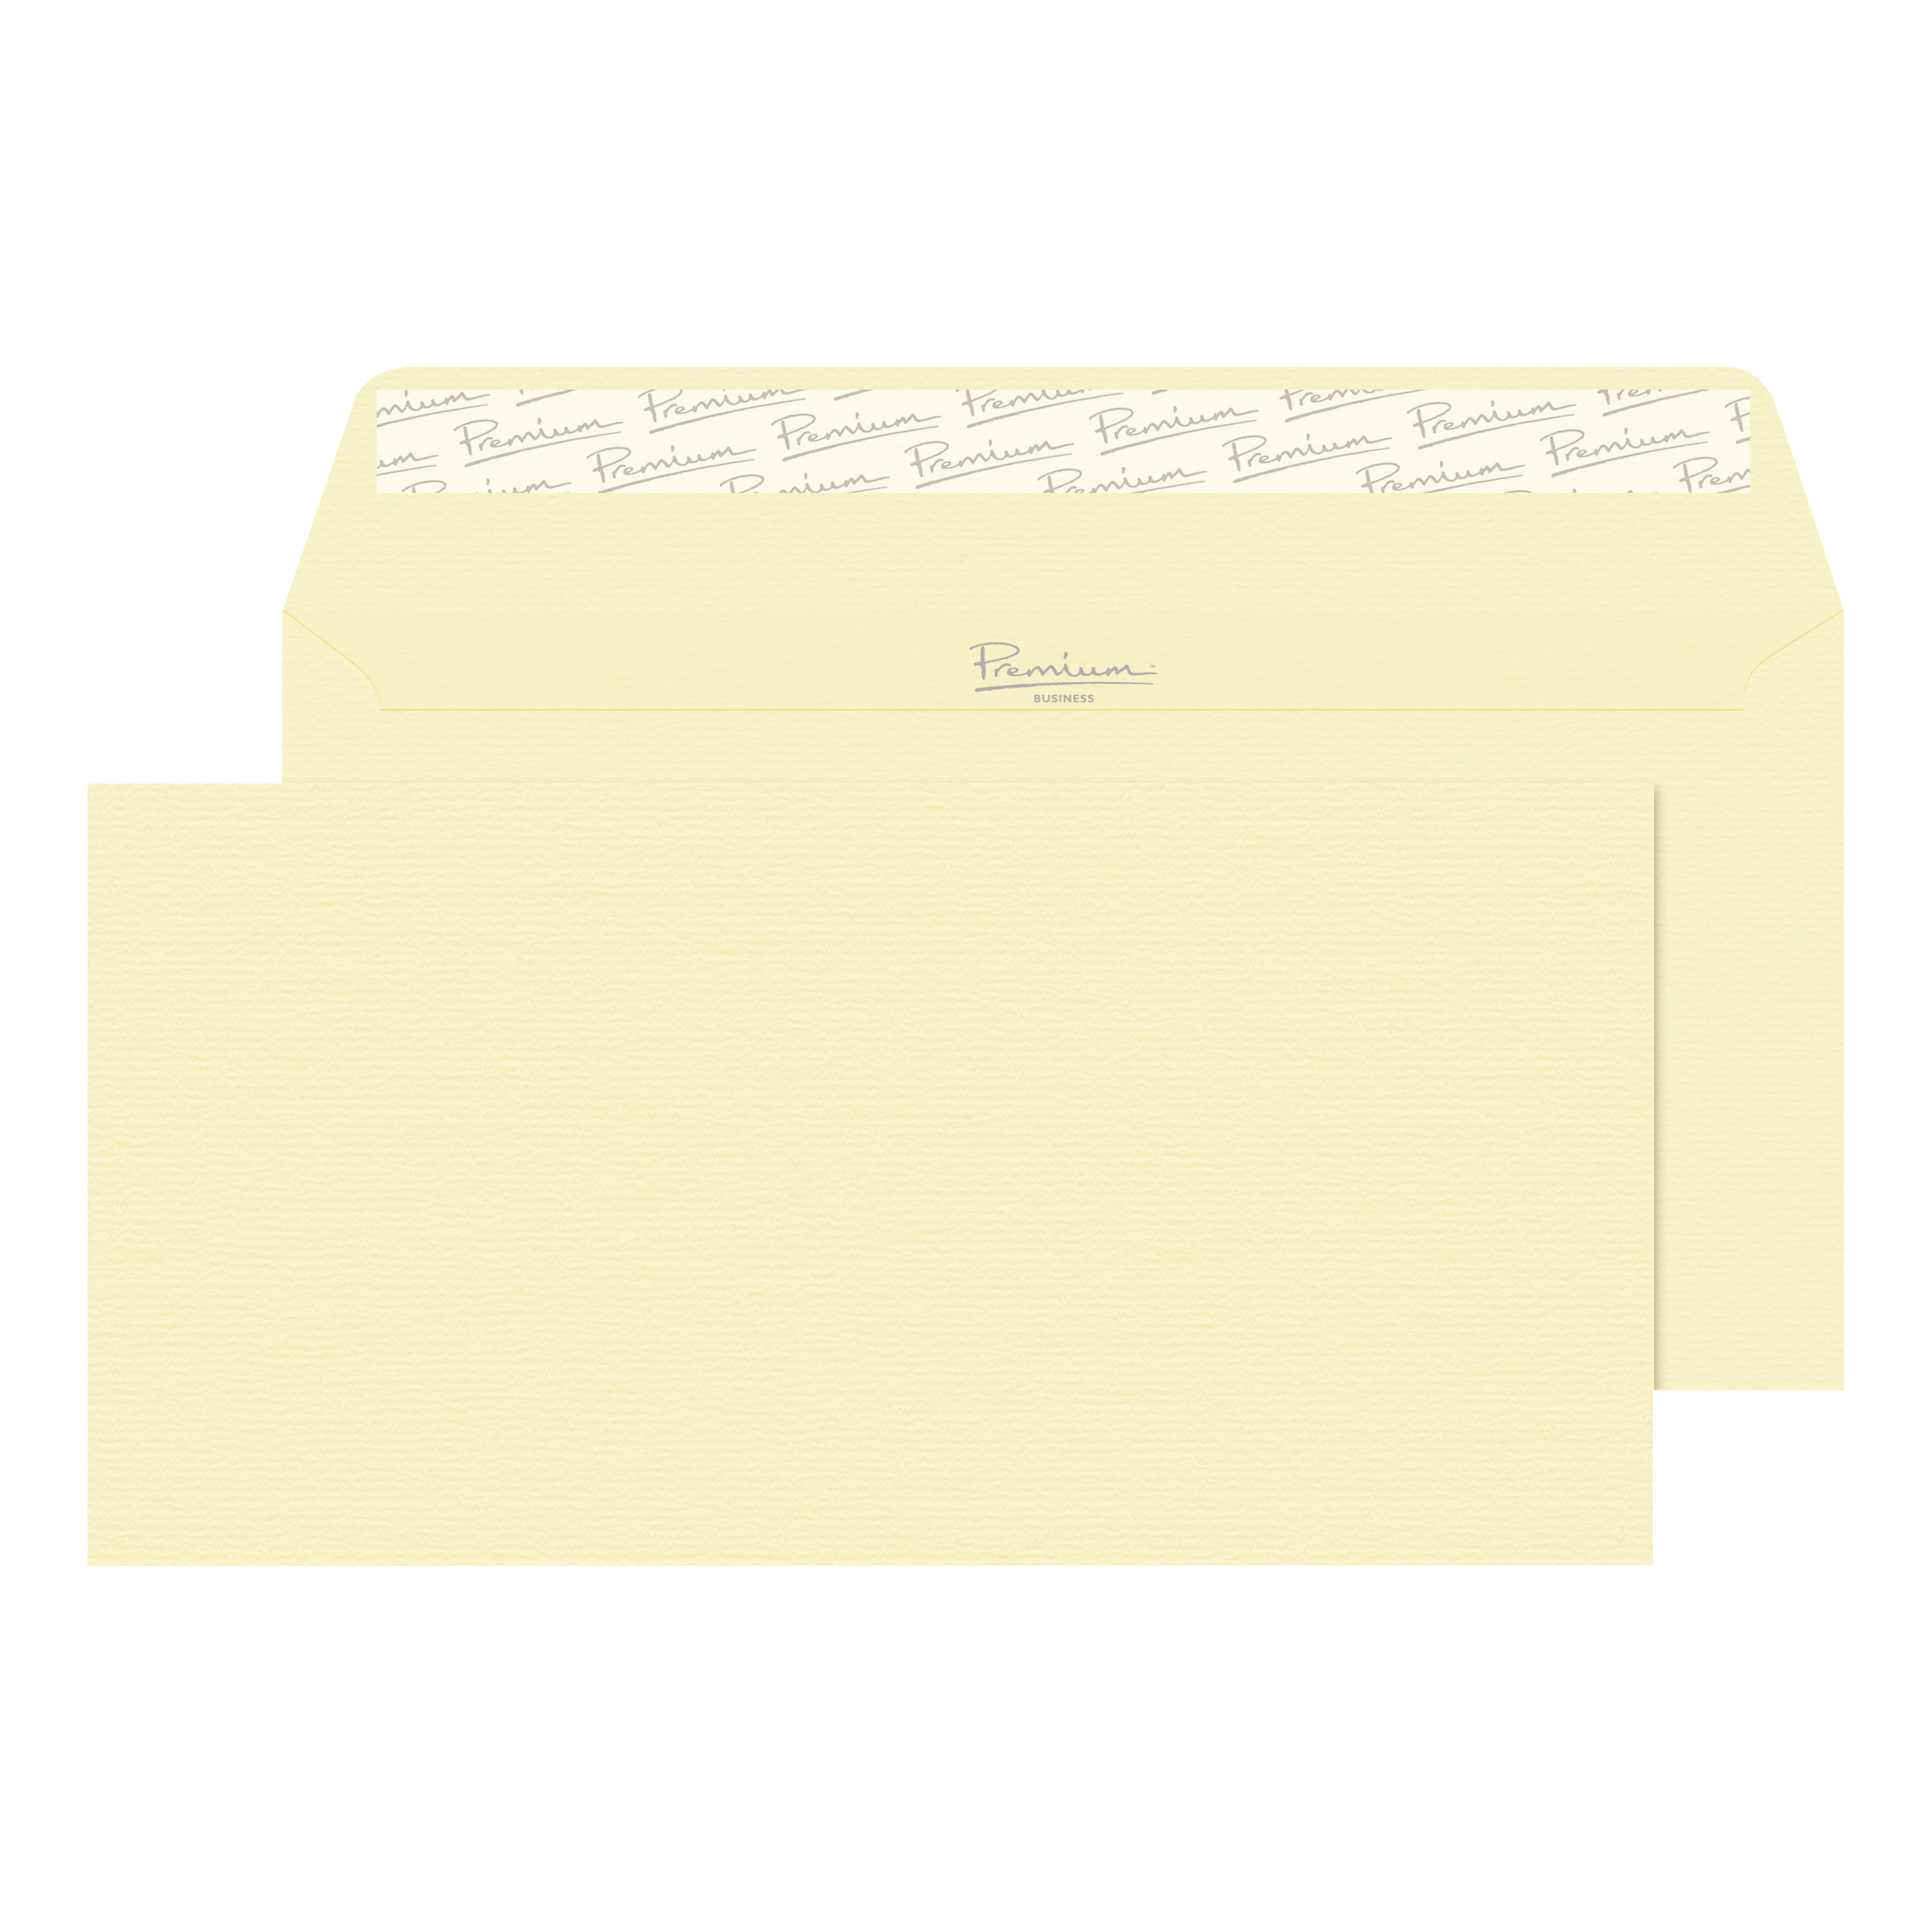 Blake Premium FSC Envelopes Wallet Peel & Seal 120gsm Laid Finish DL Vellum Ref 95882 [Pack 500]